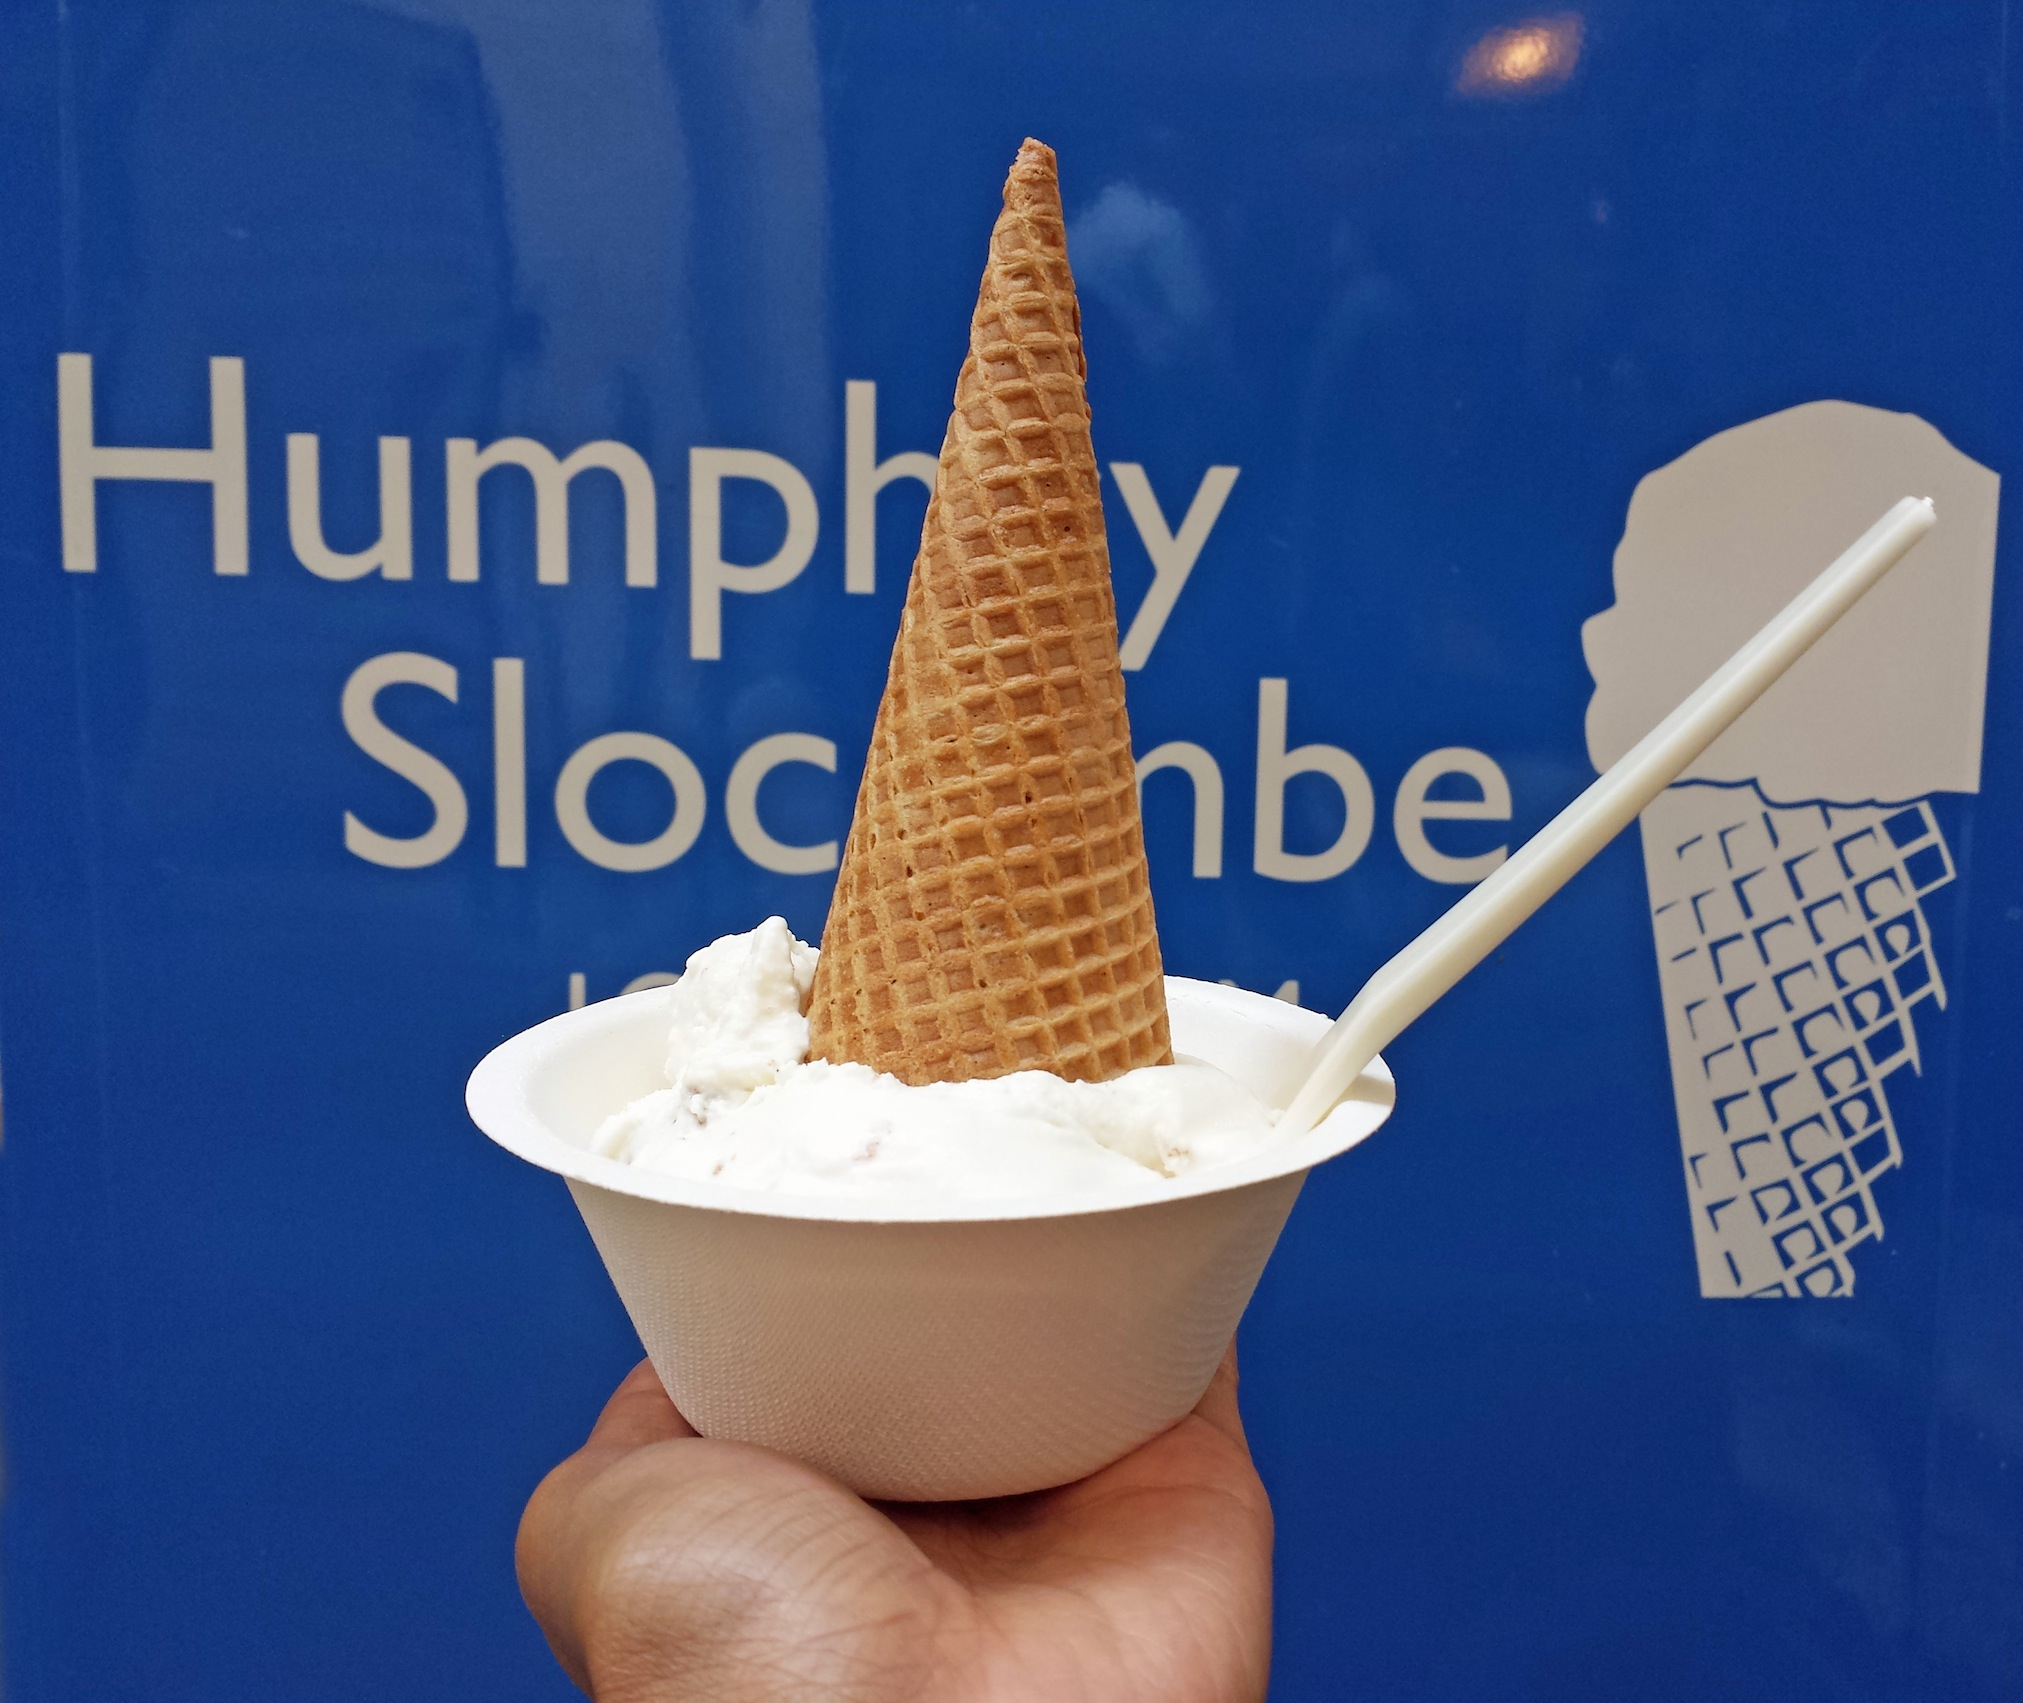 Humphry Slocombe Ferry Building